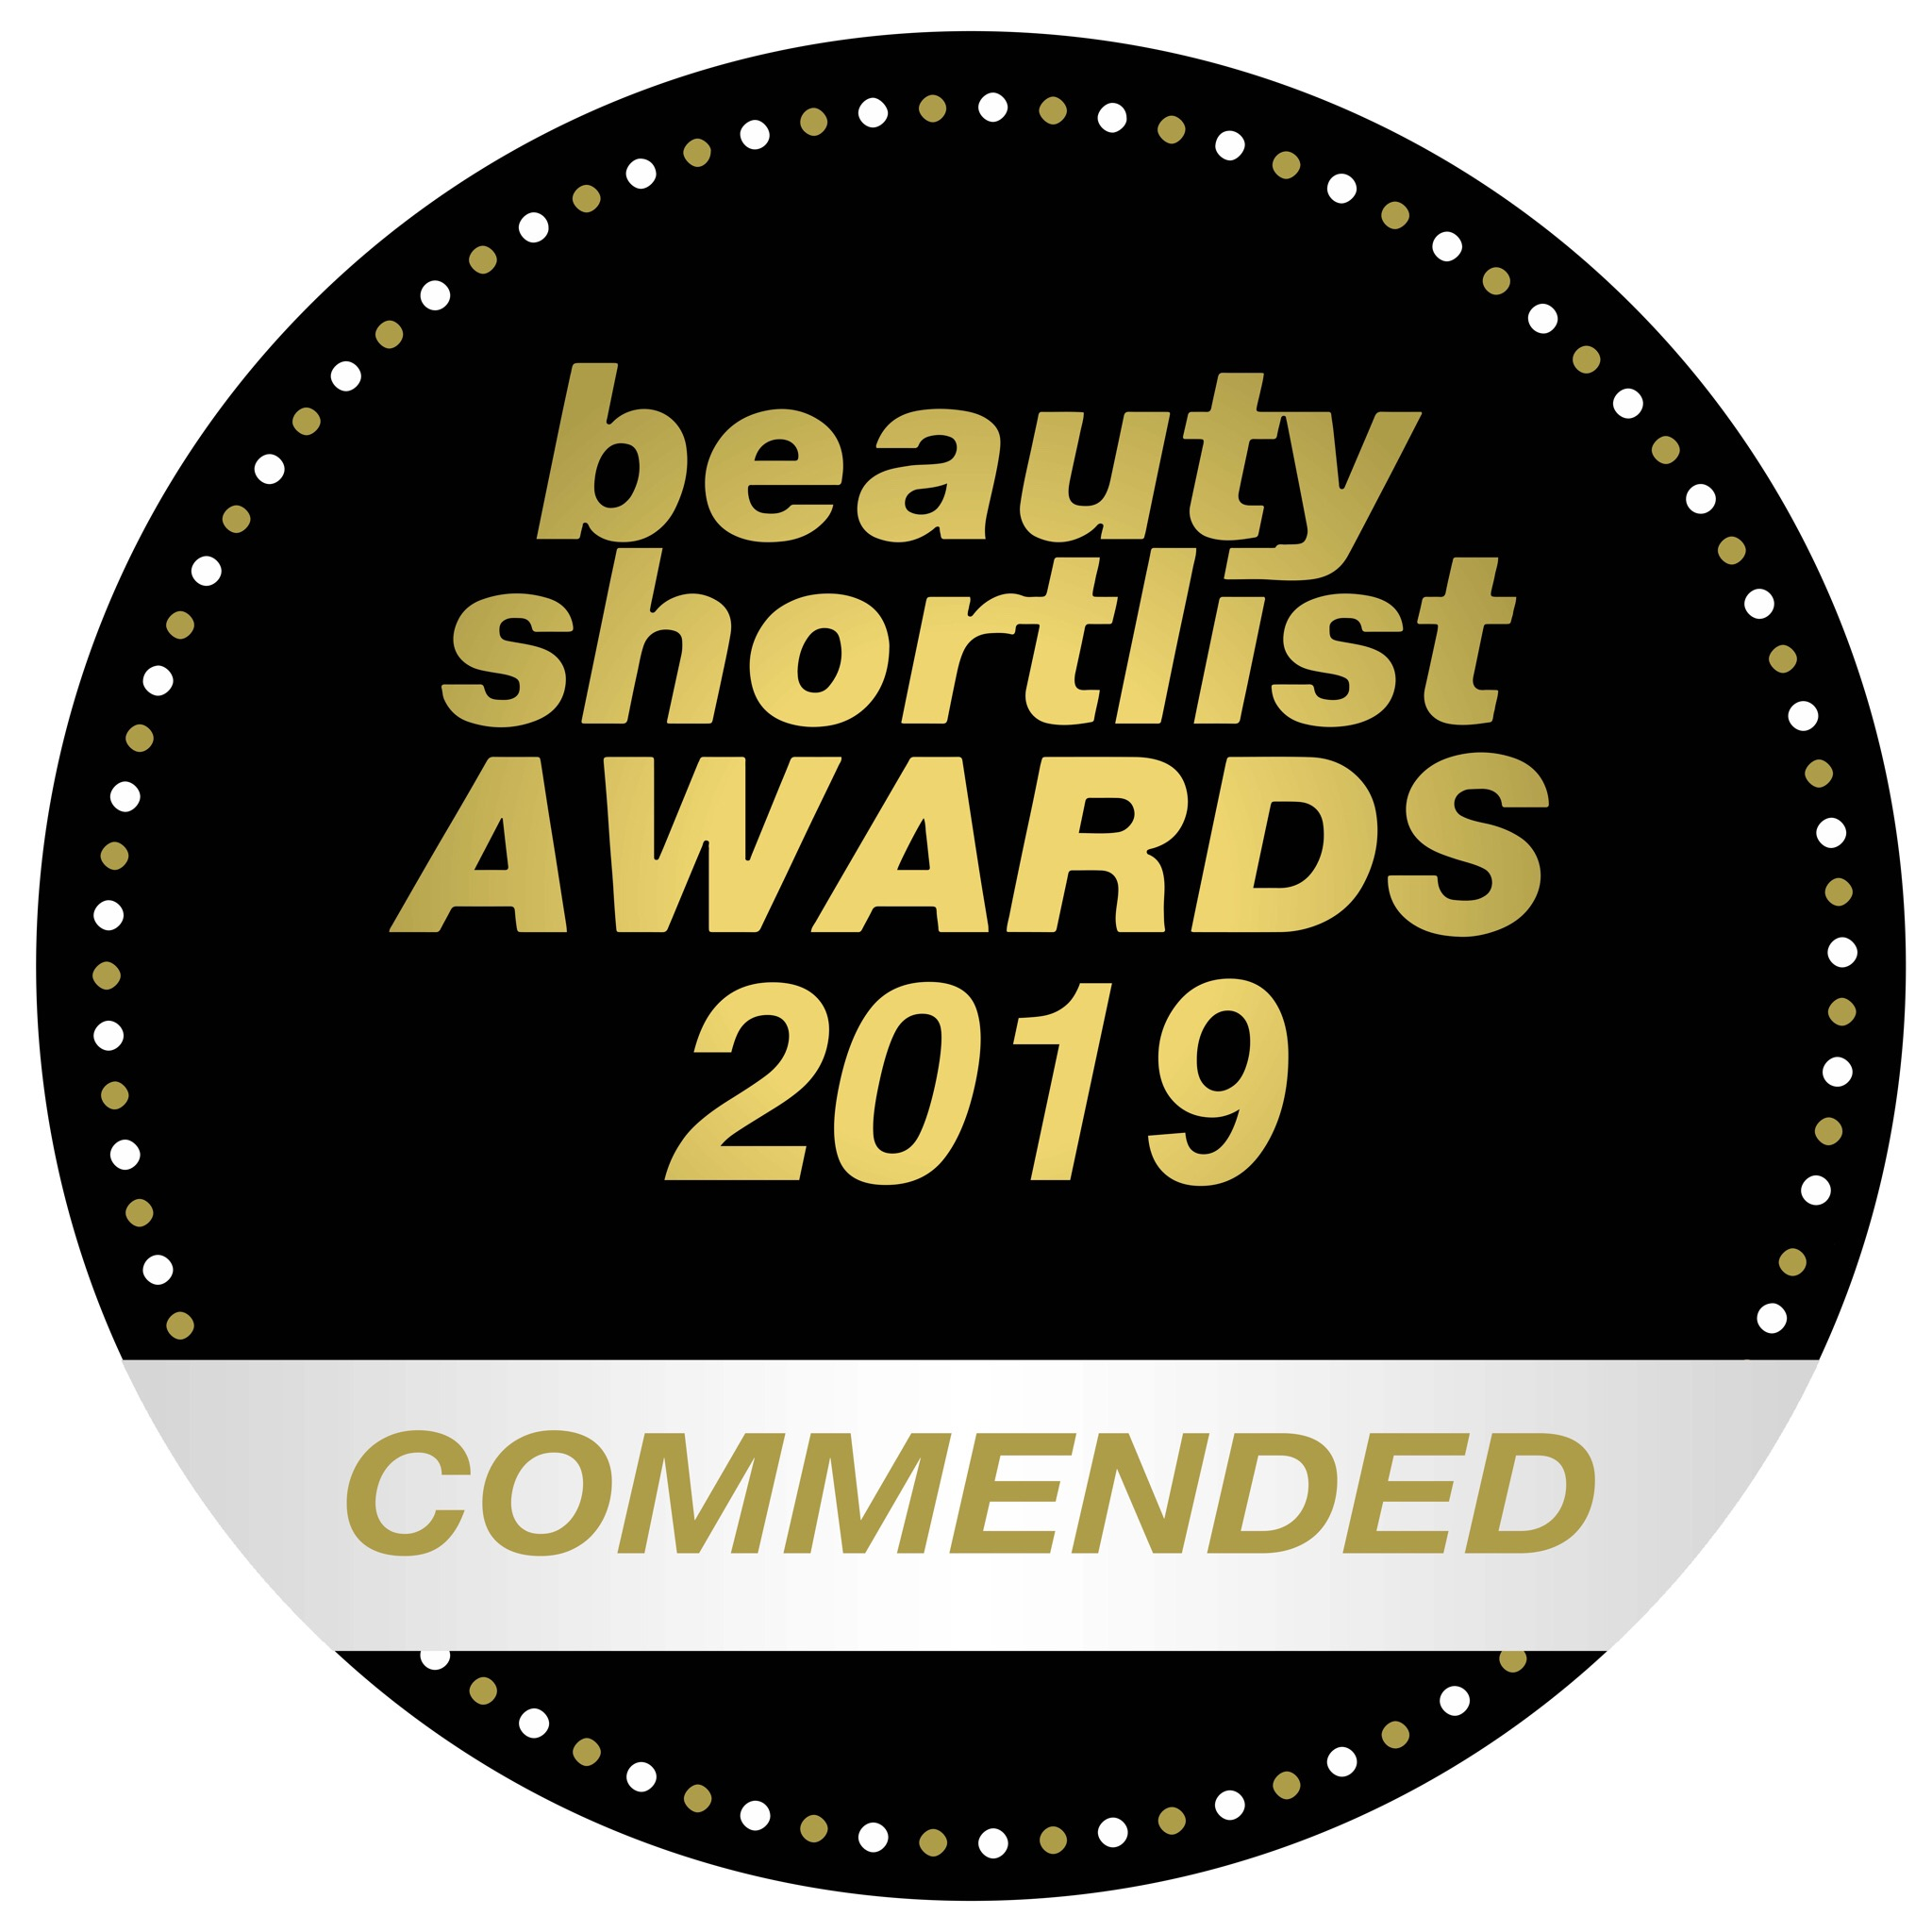 The Beauty Shortlist Awards Commended